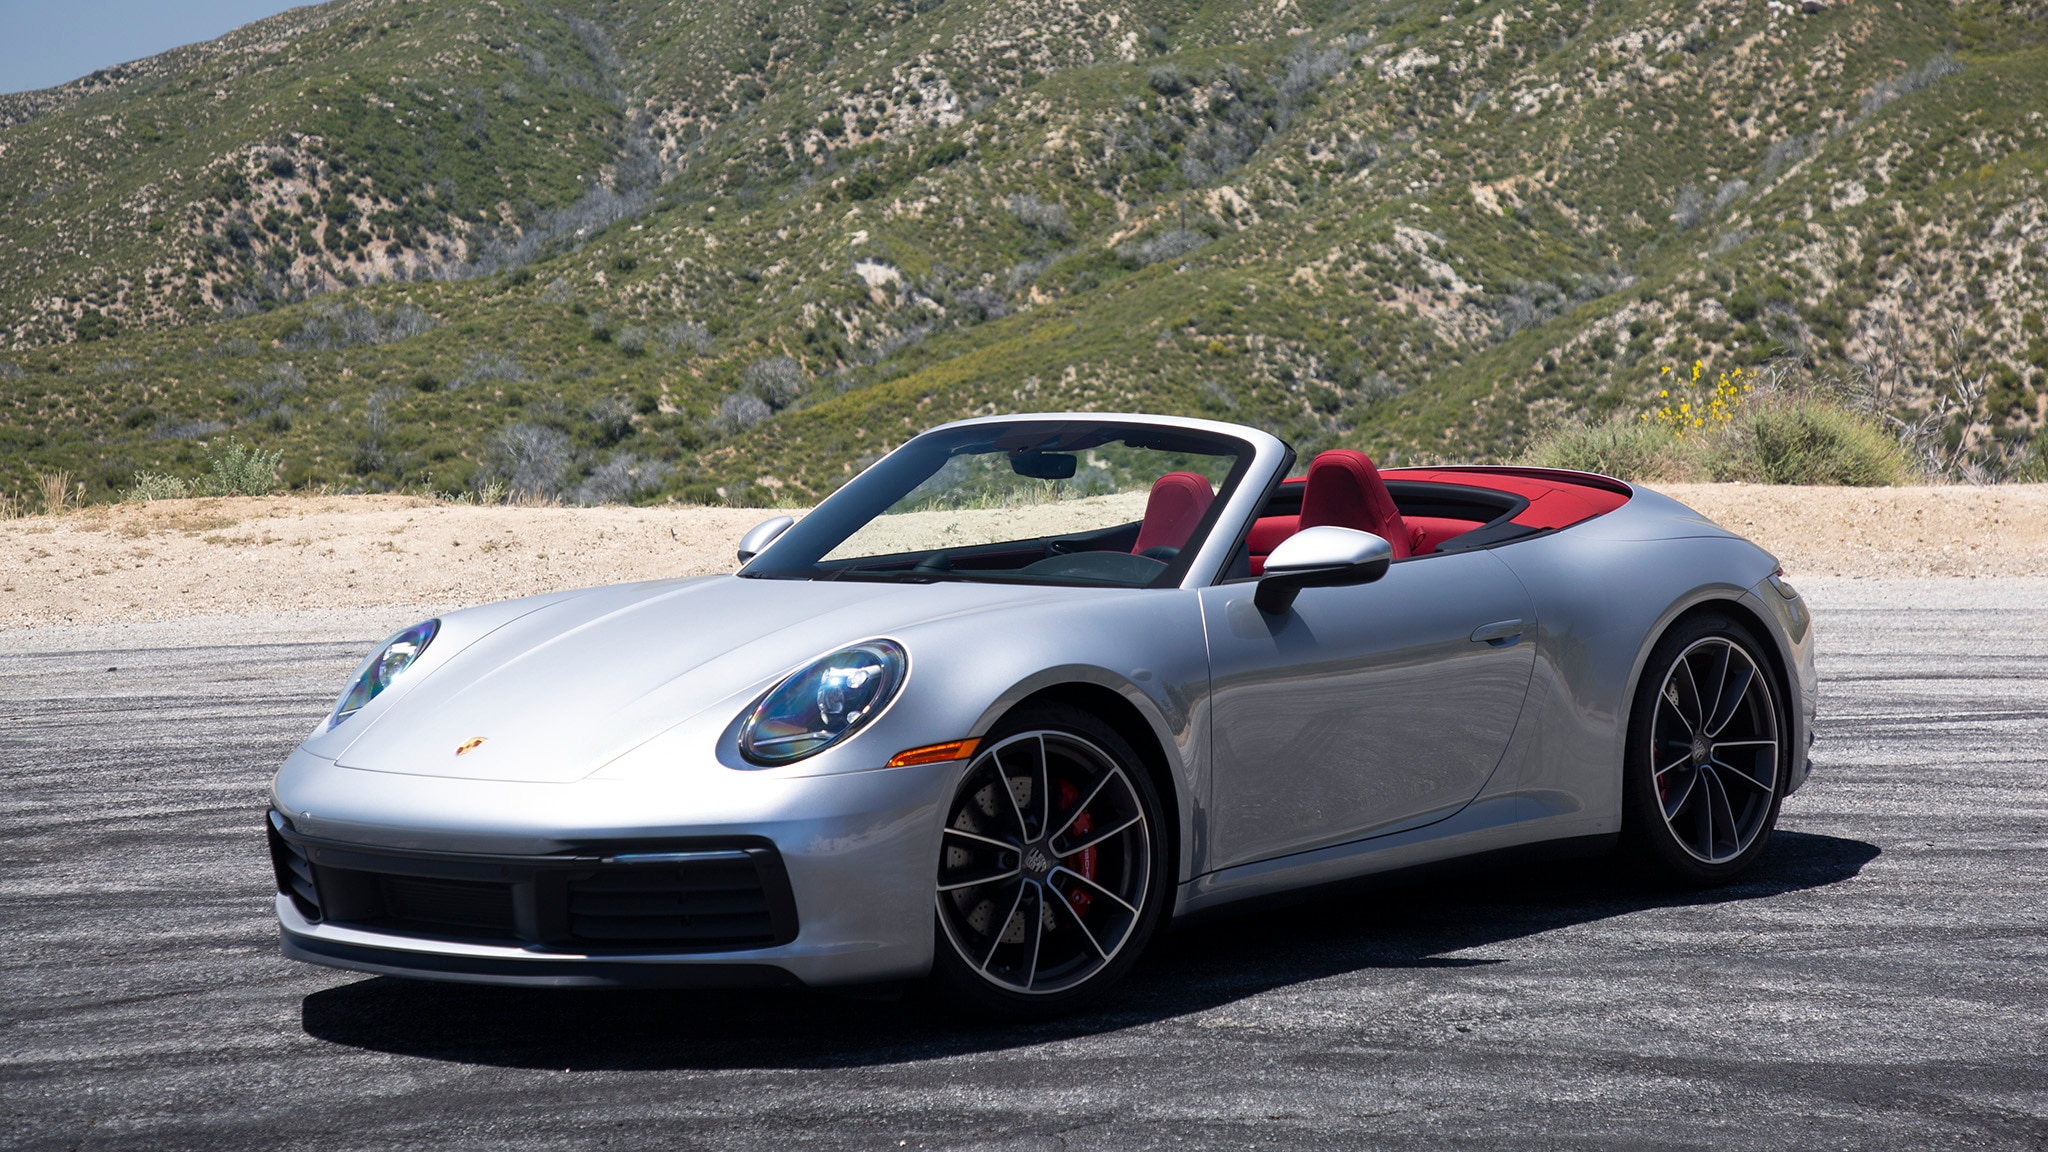 Driven Why The 2020 Porsche Carrera S Cabriolet Is The Ideal Weekend Weapon